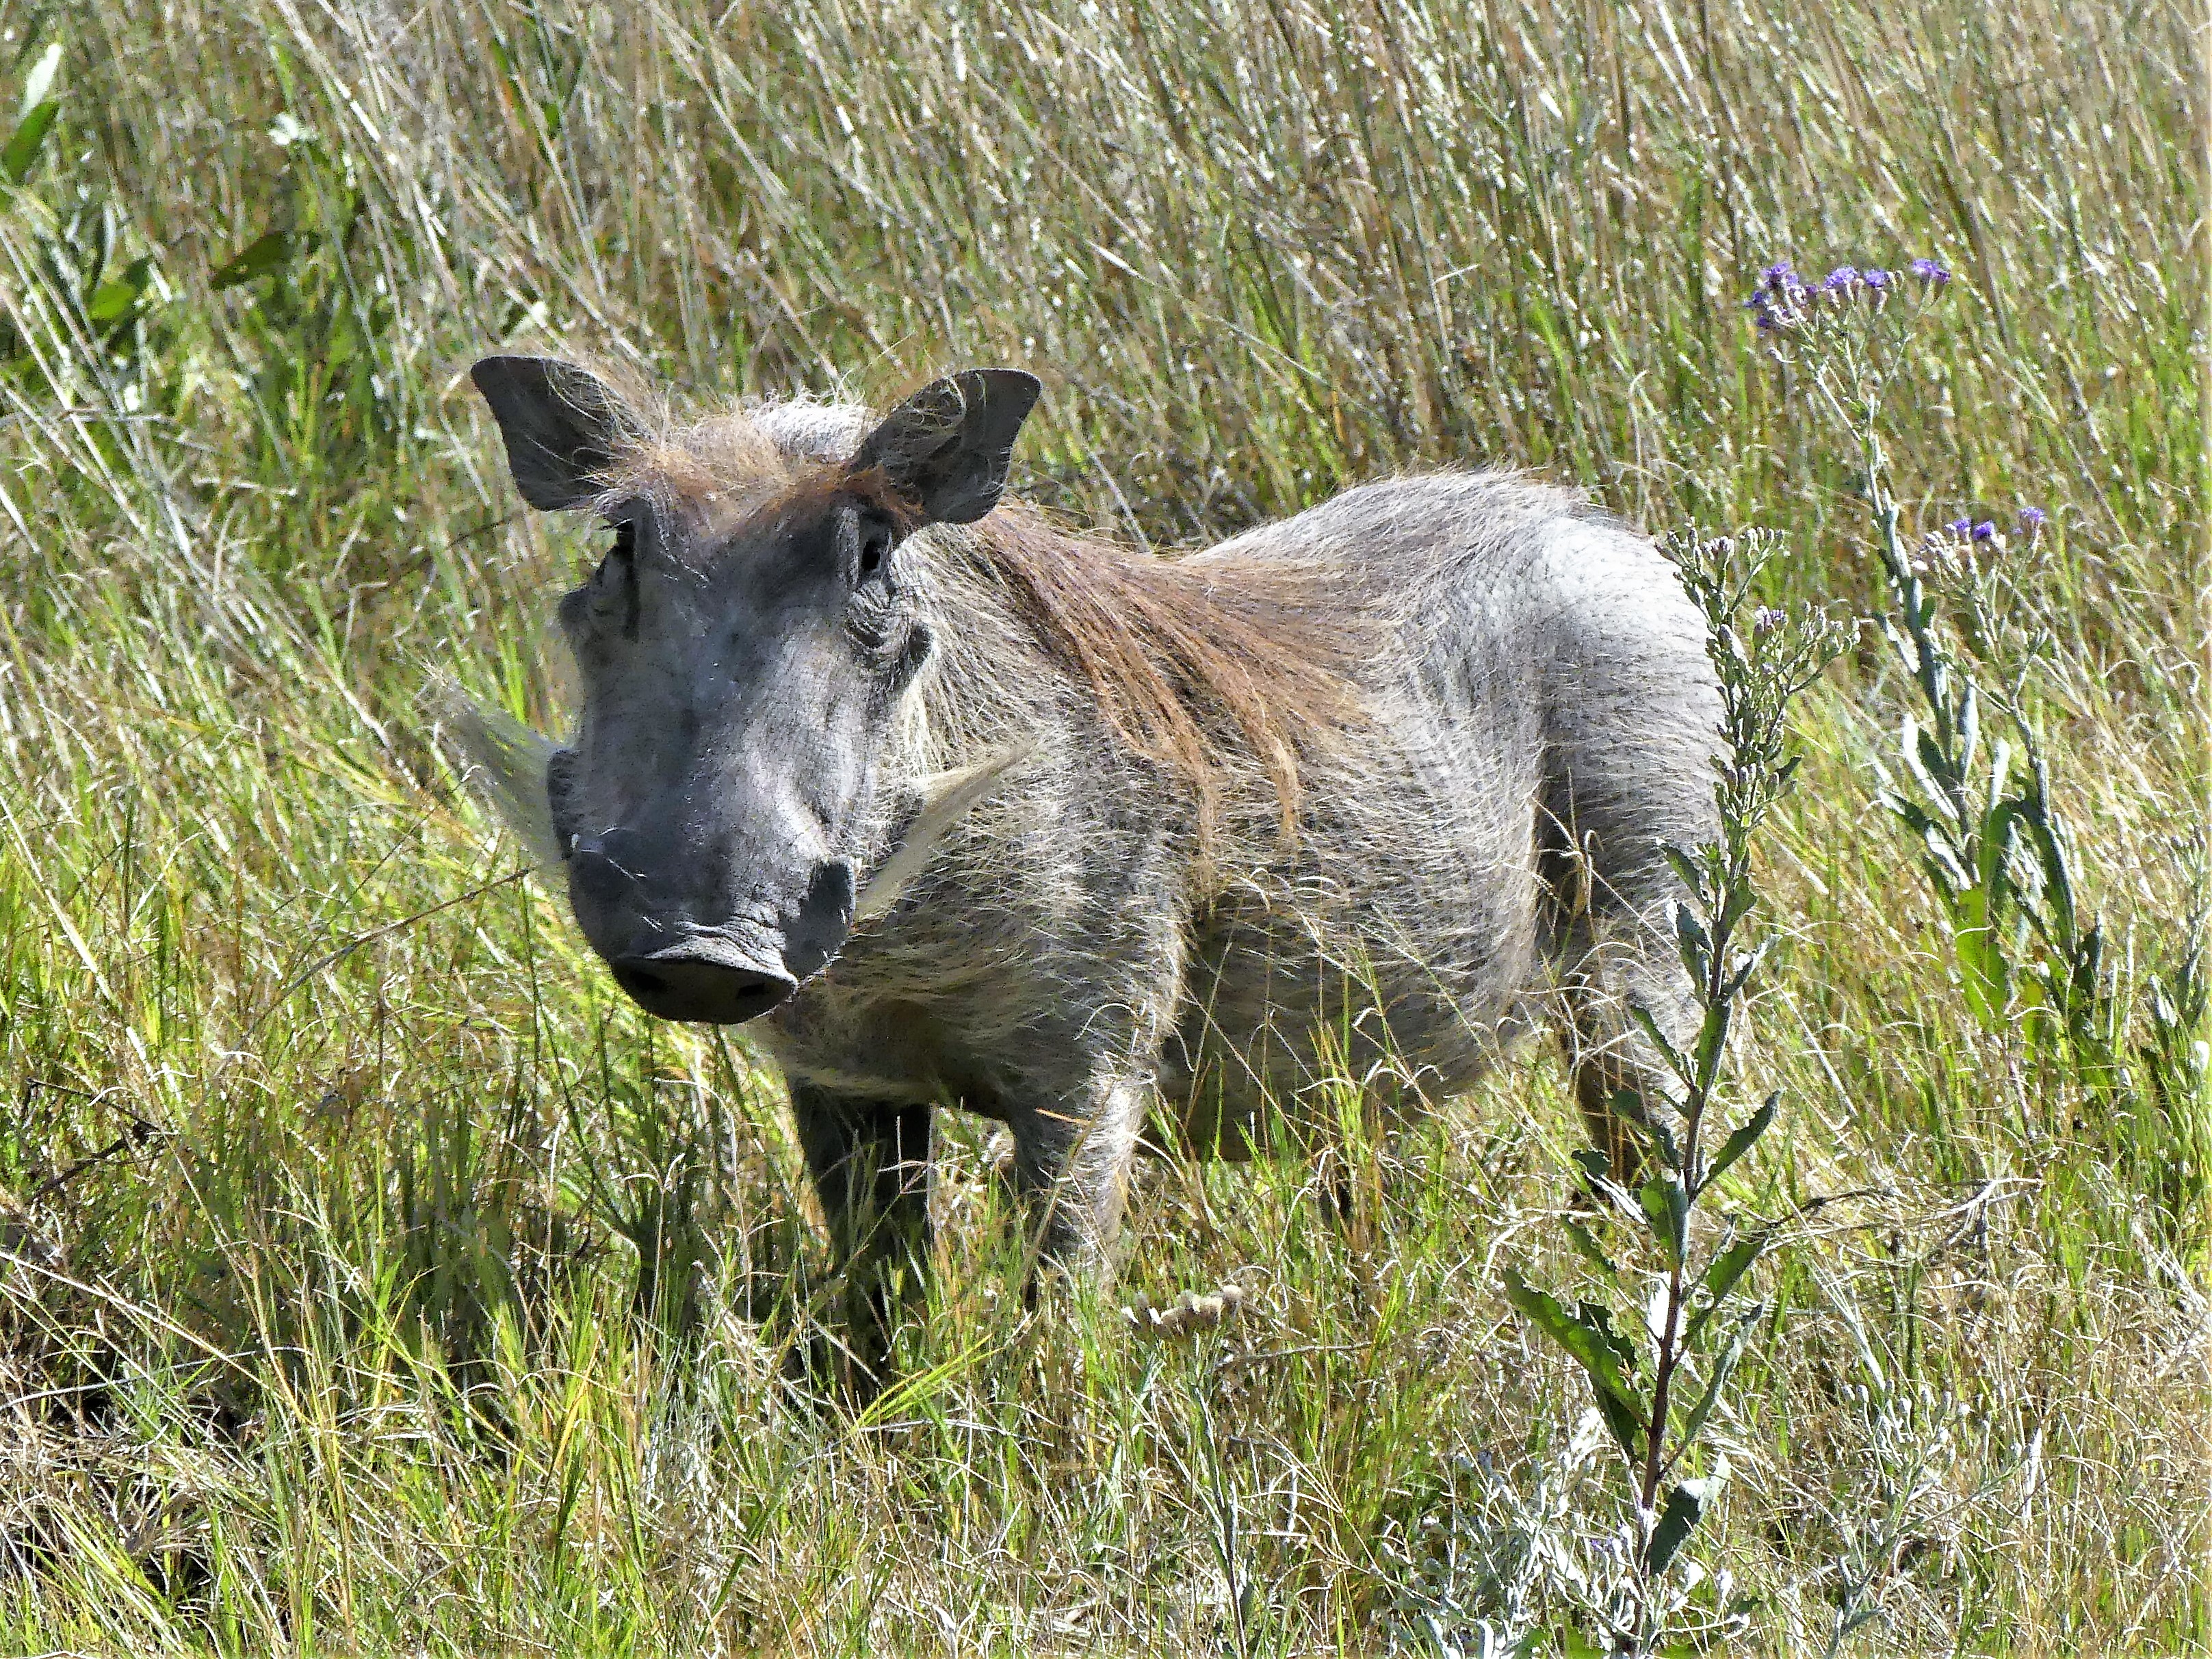 warthog in the grass